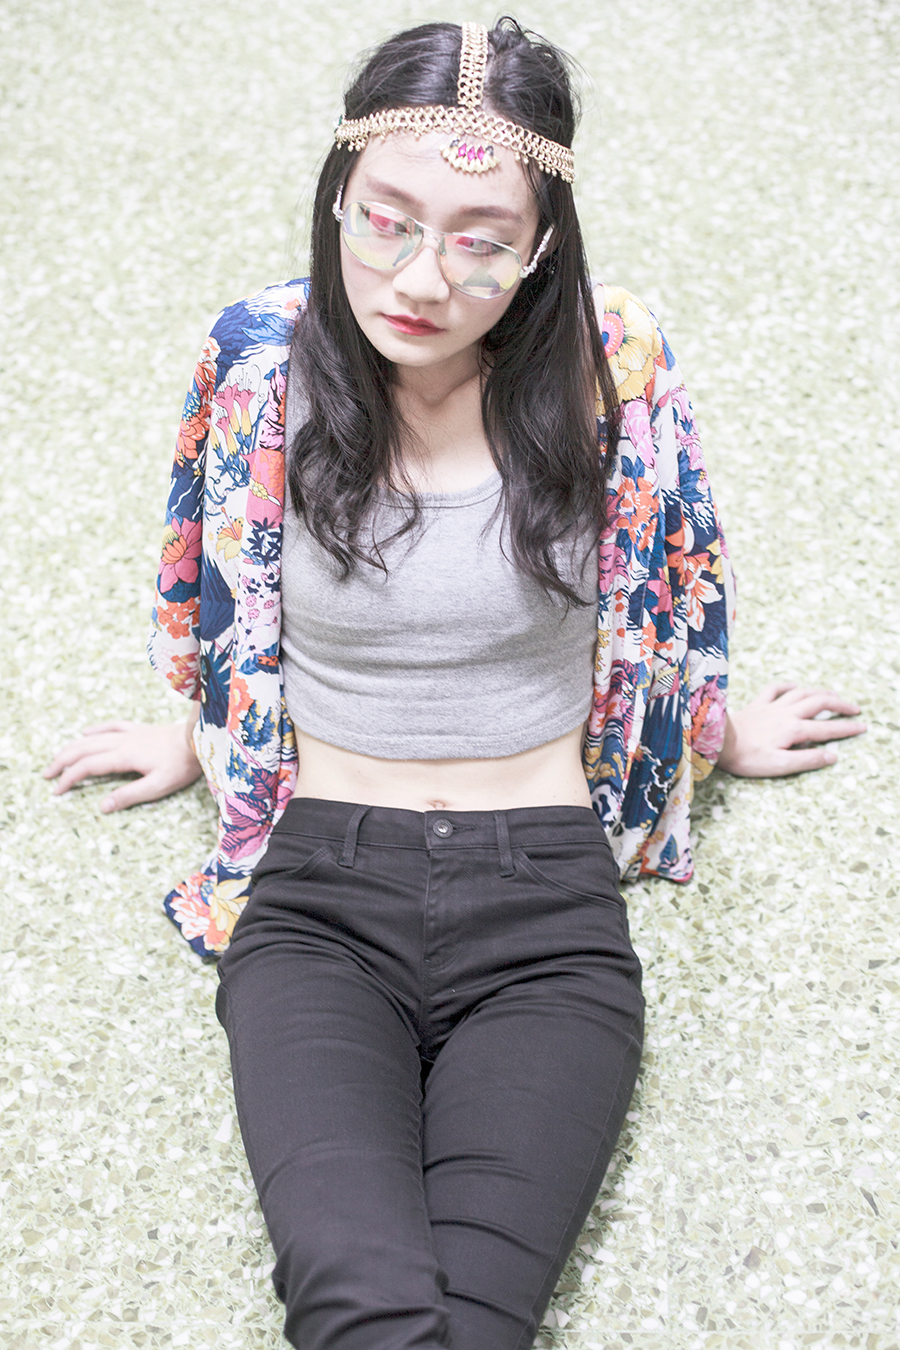 Bohemian Luxe Outfit: DressLink grey tank crop top, DressLink floral batwing cardigan kimono, Uniqlo Ultra Stretch black denim skinny jeans, Irresistible Me gold Jade Hair Chain, Guess iridescent sunglasses.